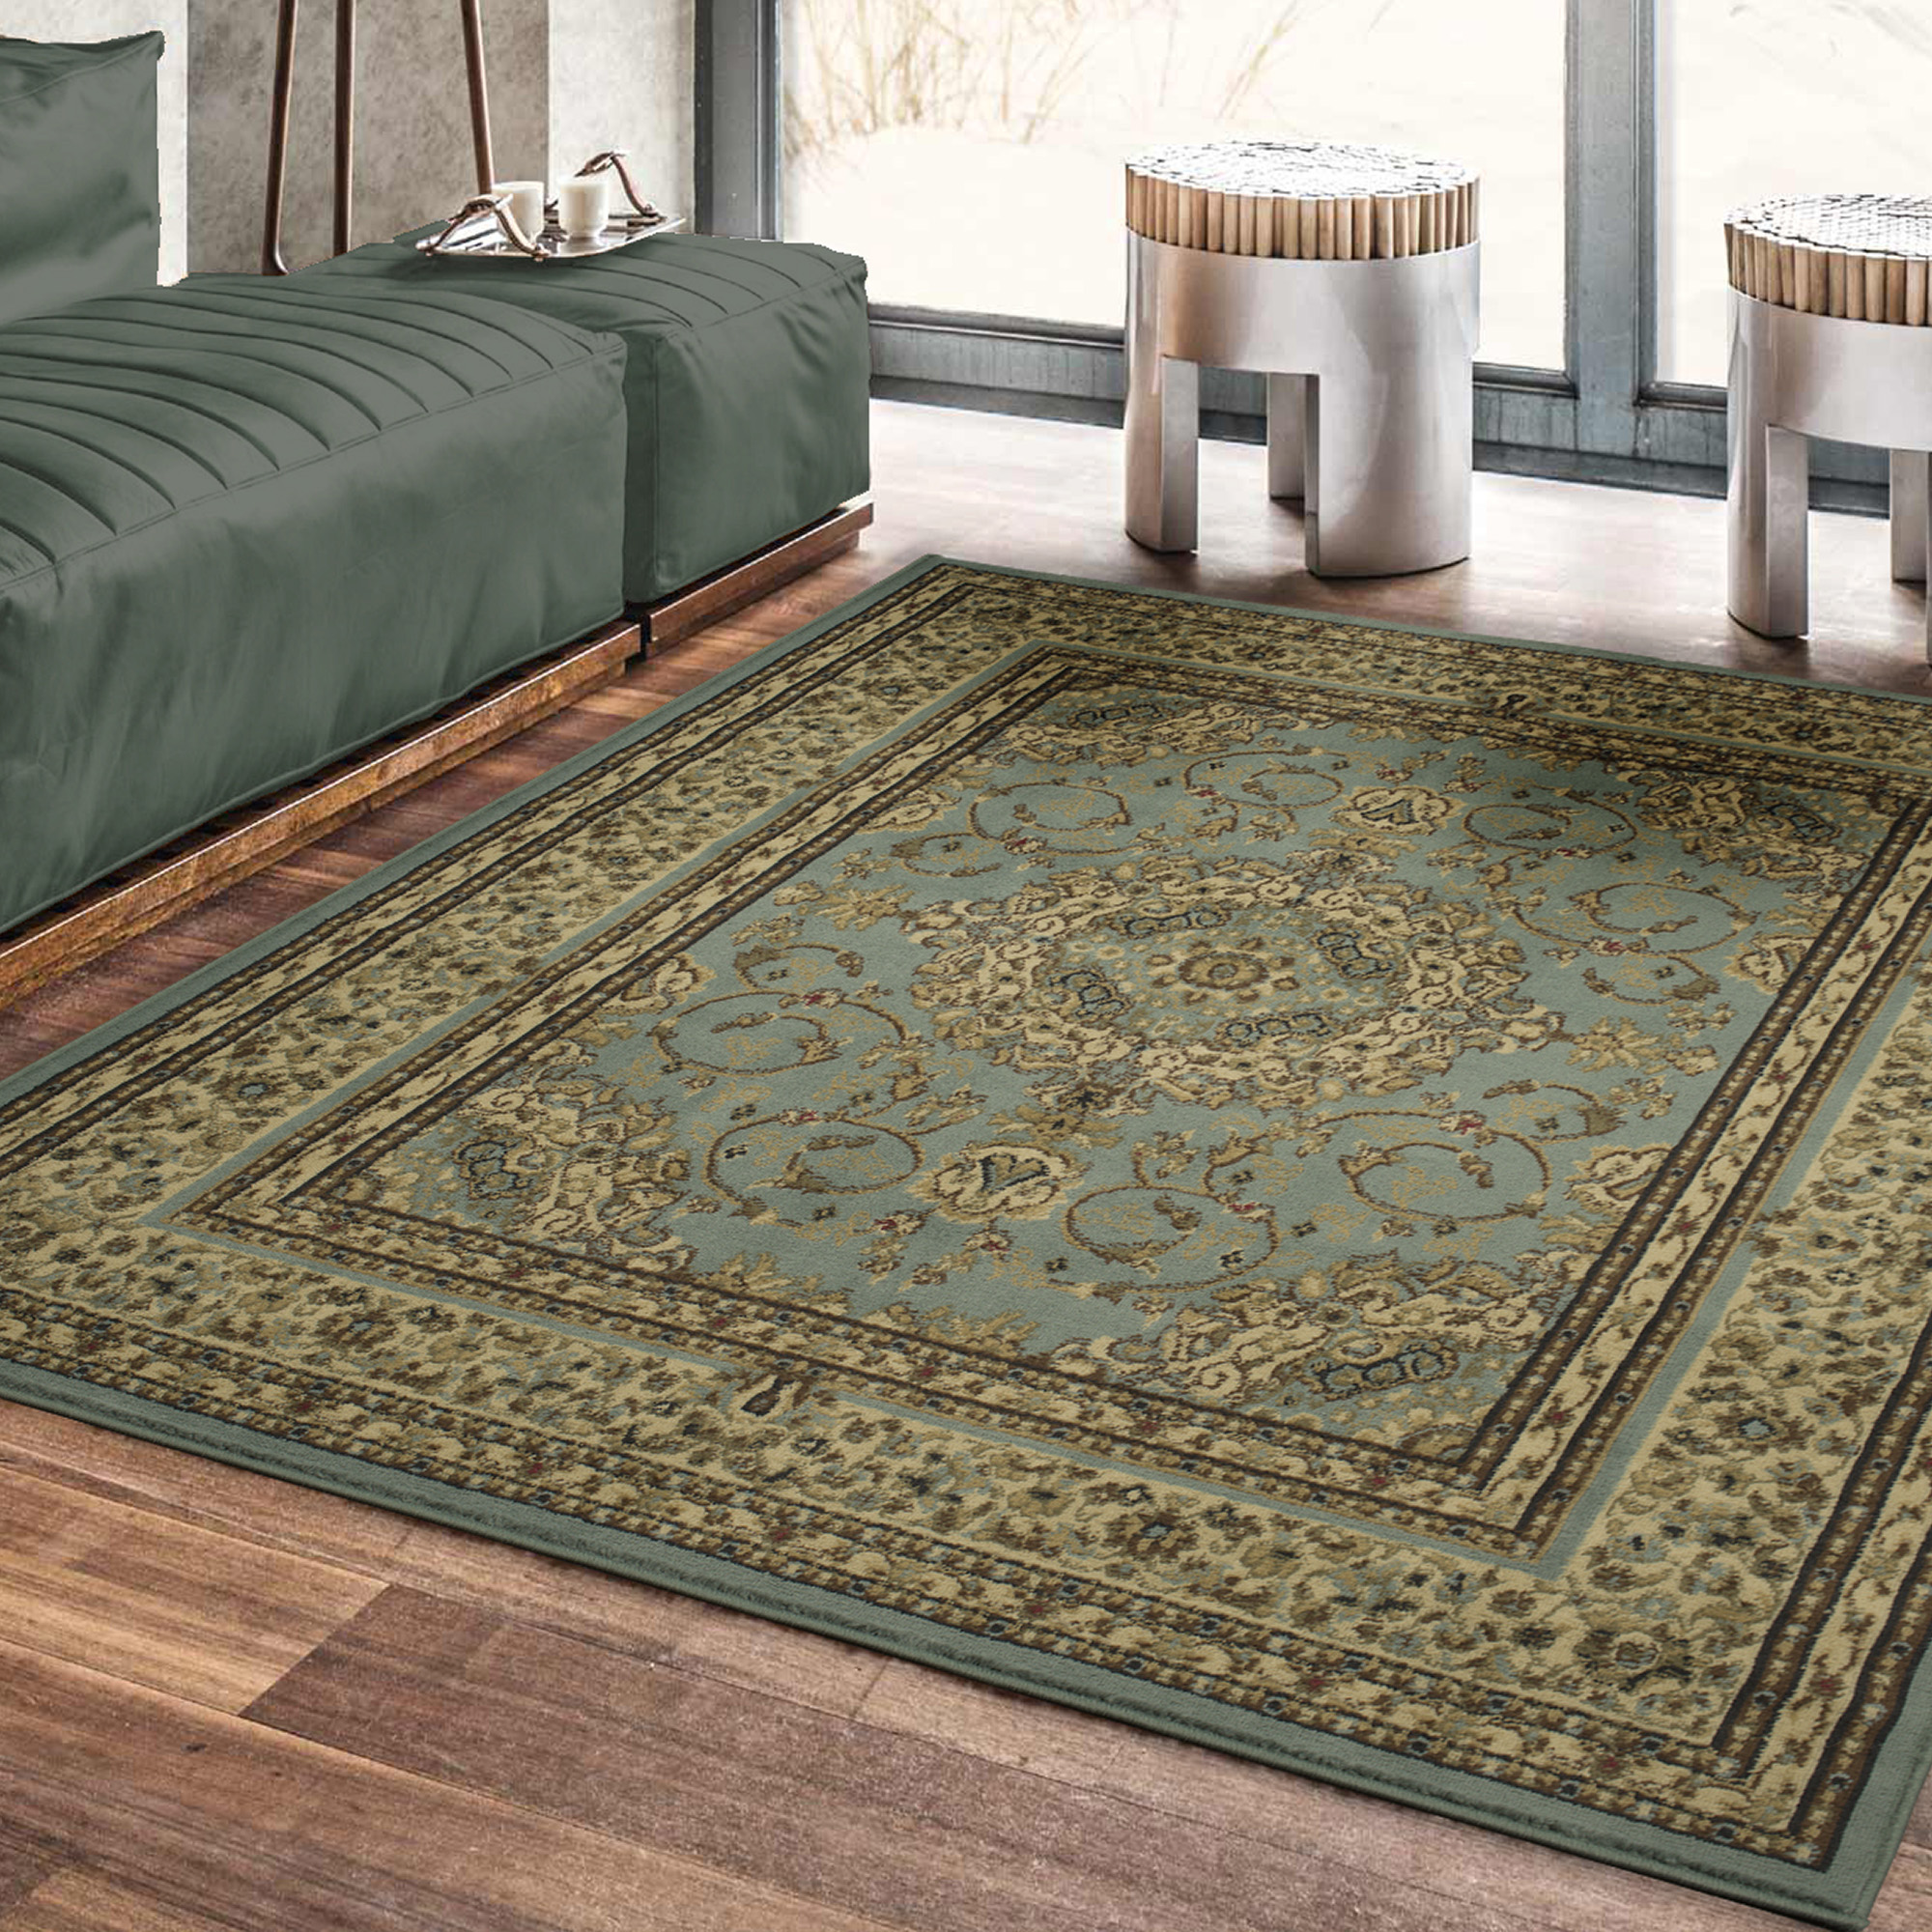 Ottomanson Royal Collection New Oriental Medallion Design Area Rug